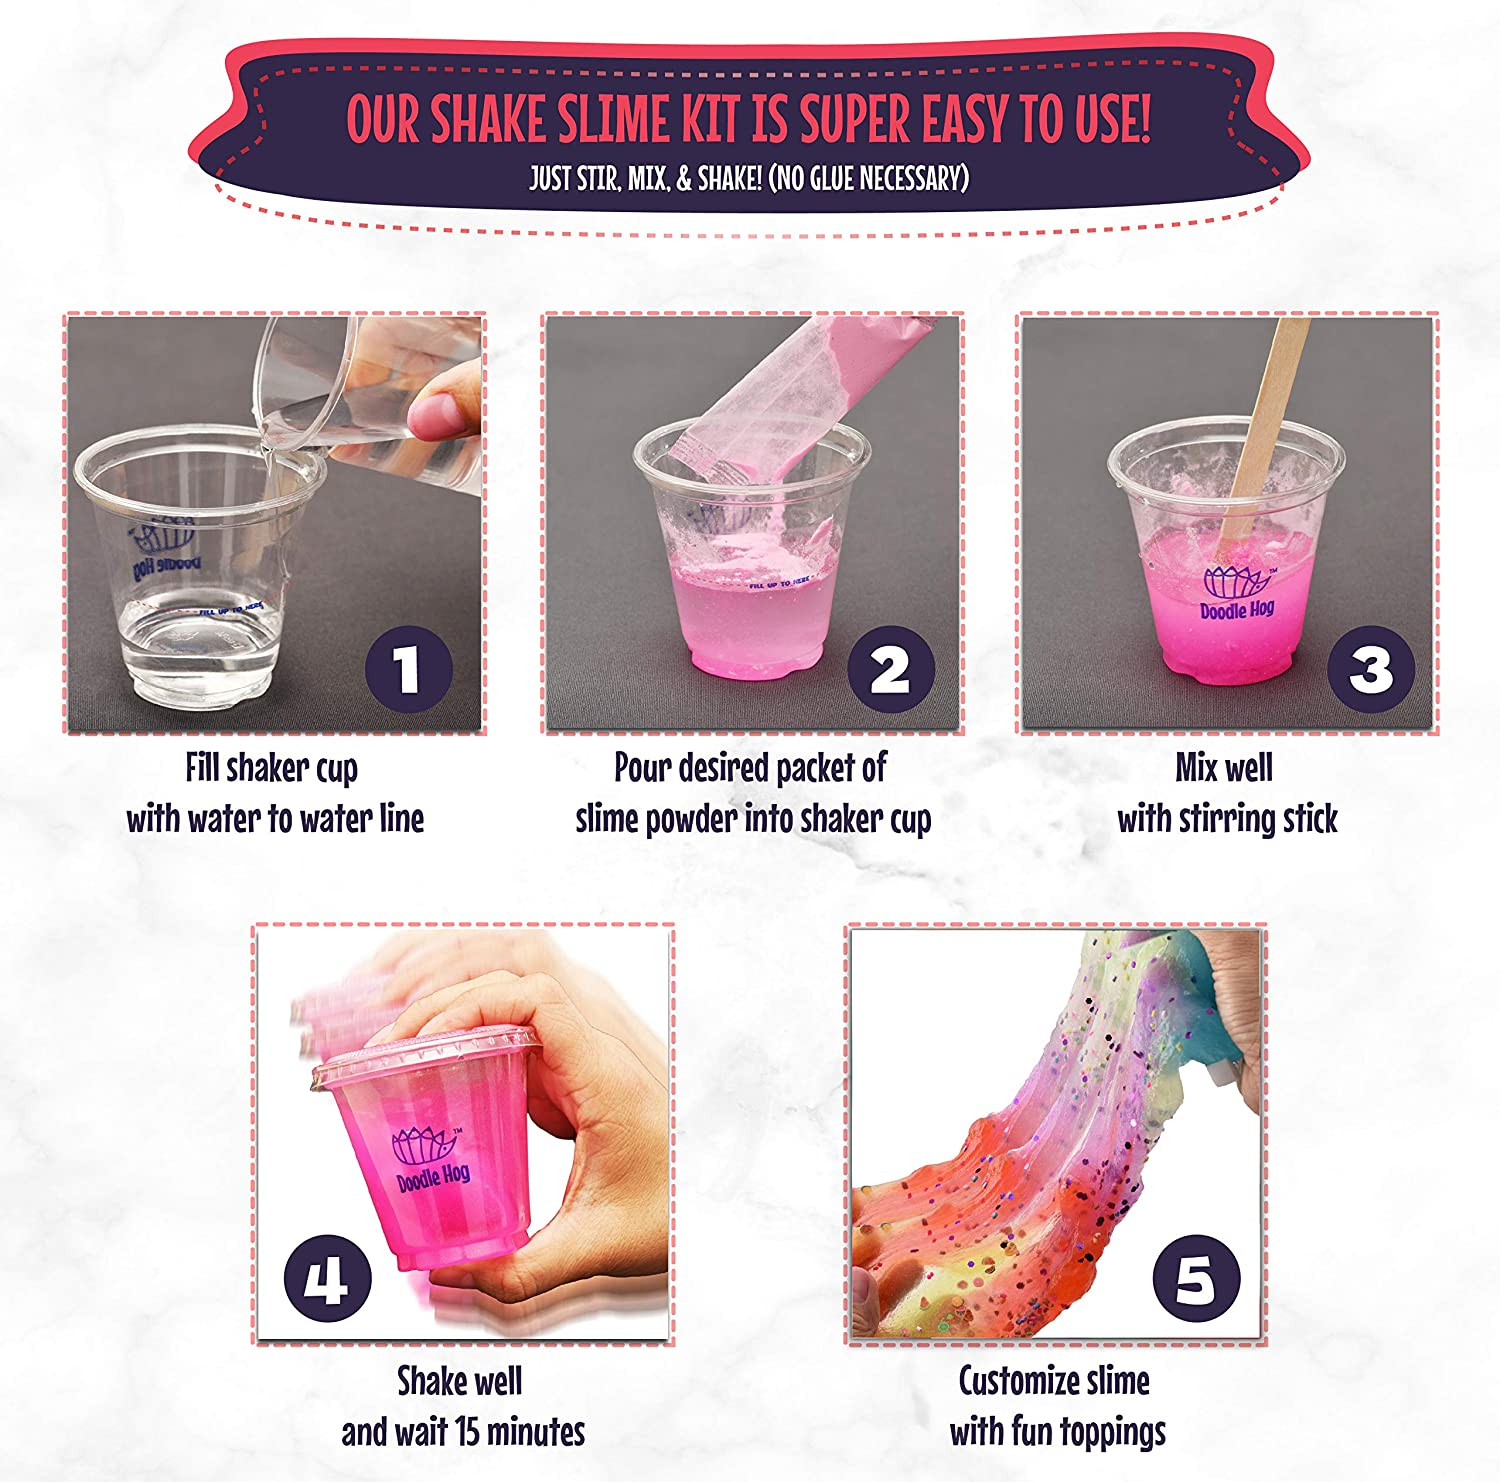 c5b31d760789d No Glue. Shake Slime Kit for Girls and Boys for 10 Kinds of Shaker Slime.  No Mess. Just Add Water, Mix, and Shake. Includes Fun Toppings and  Take-Home ...